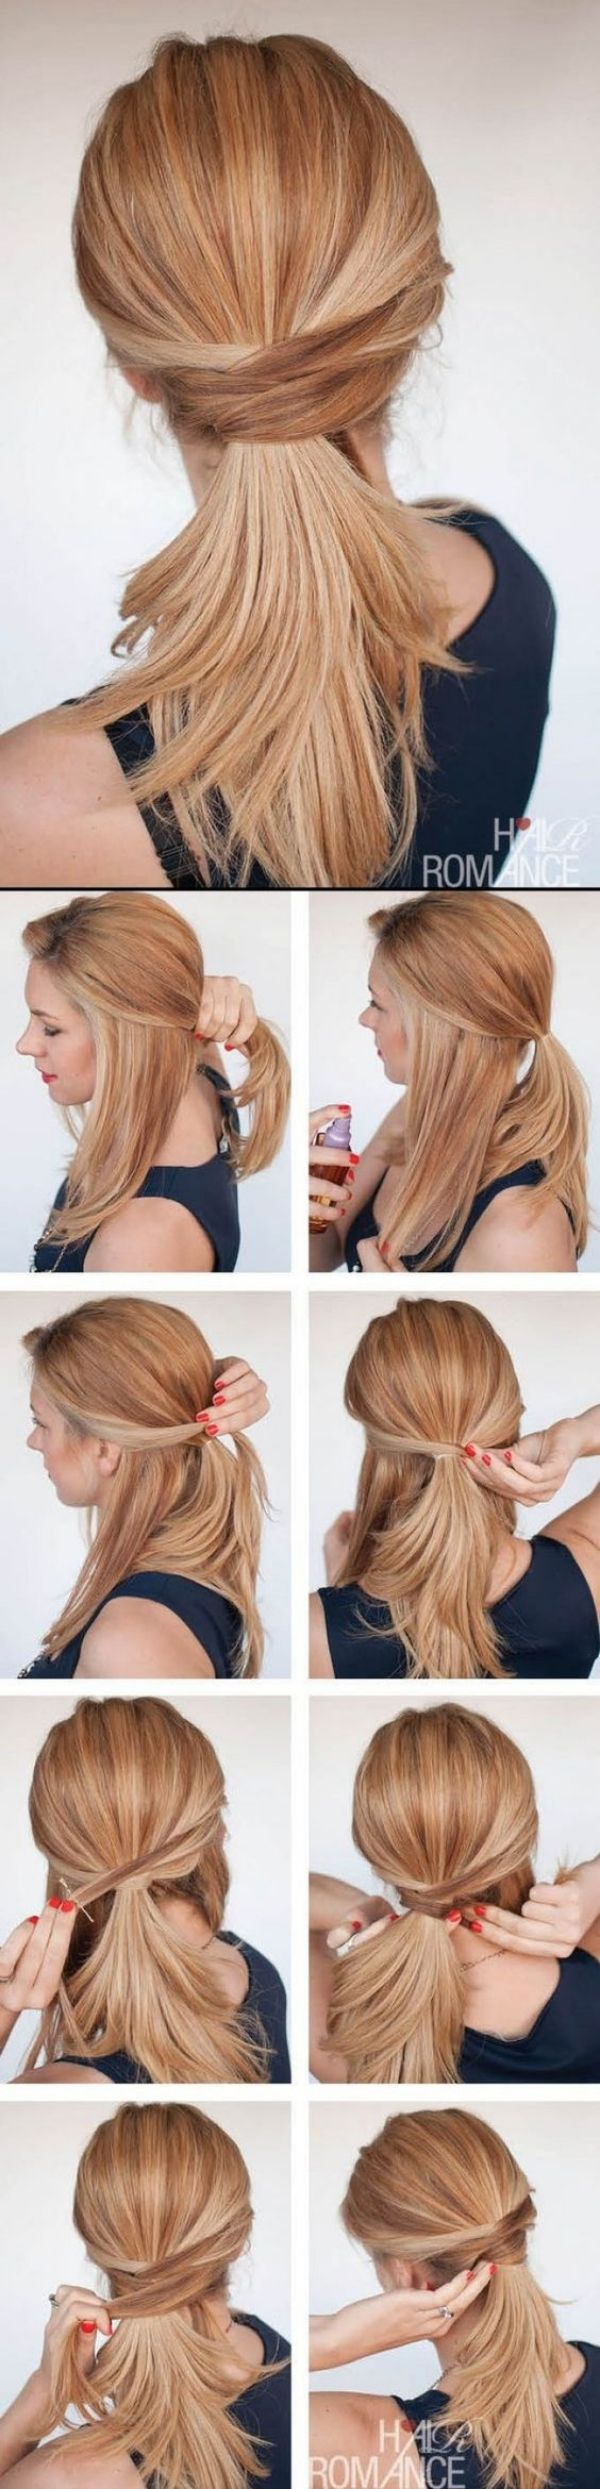 10 short hairstyles for women over 50   hair styles   hair